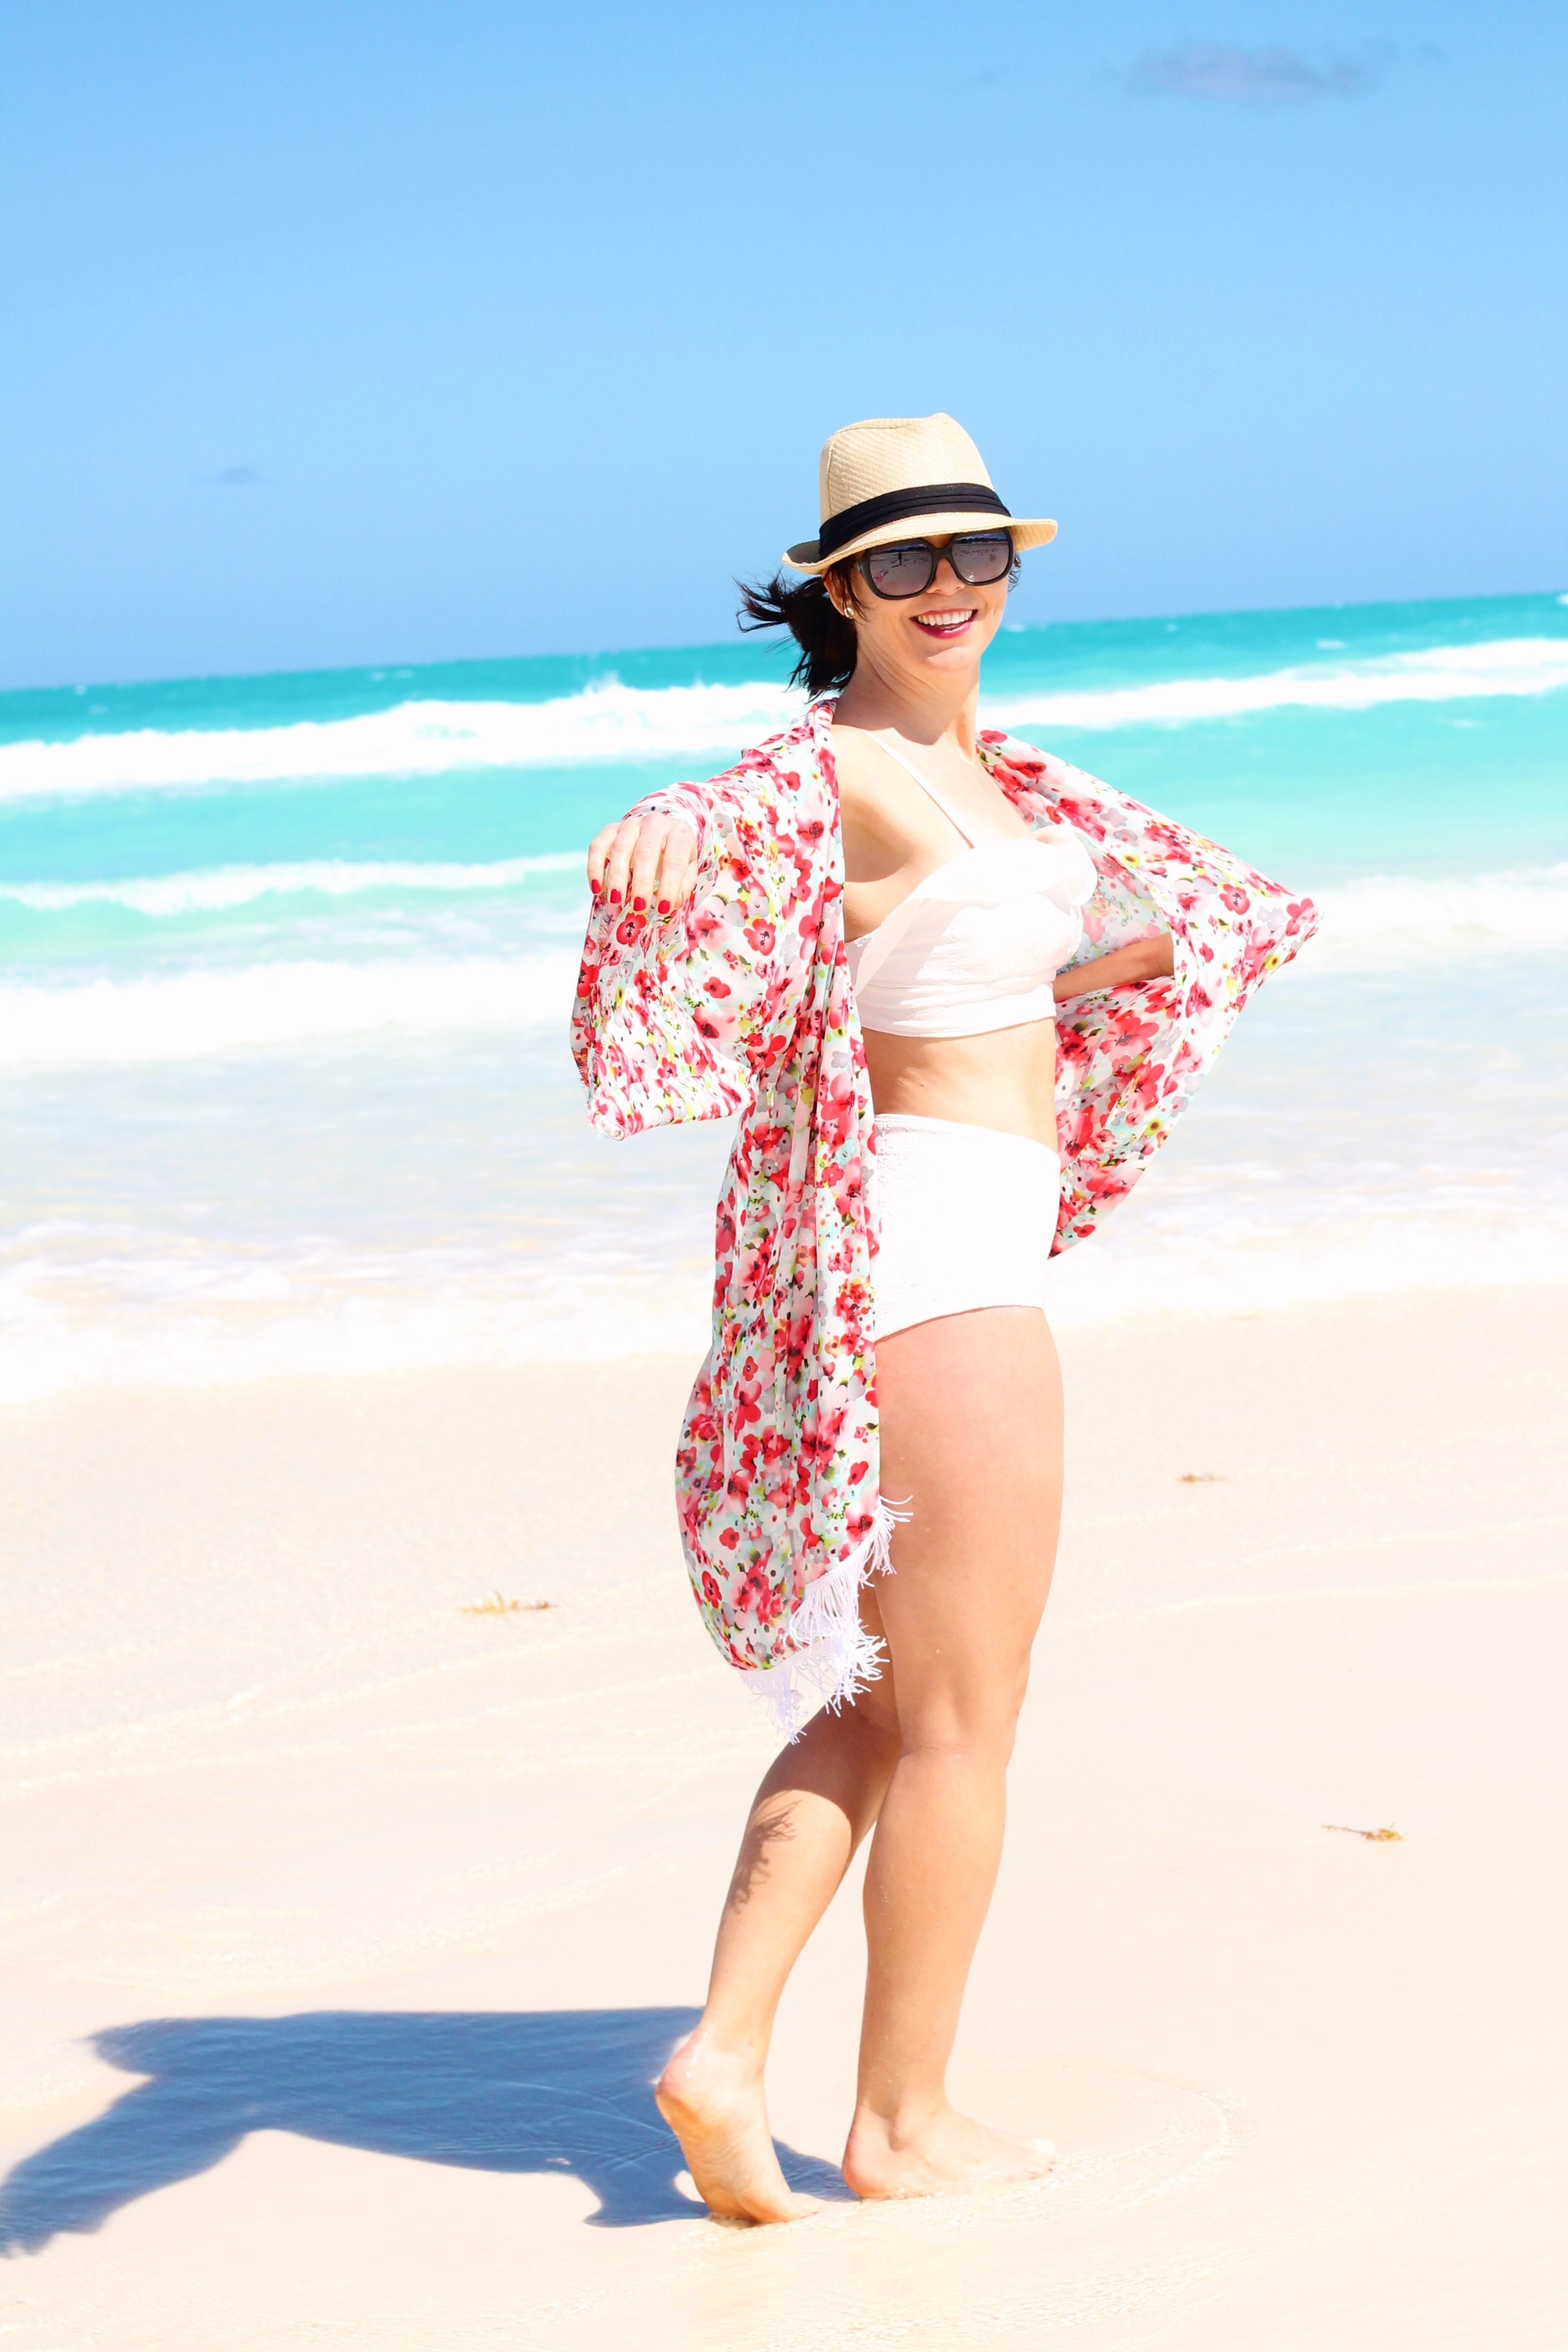 floral coverup/white bathing suit